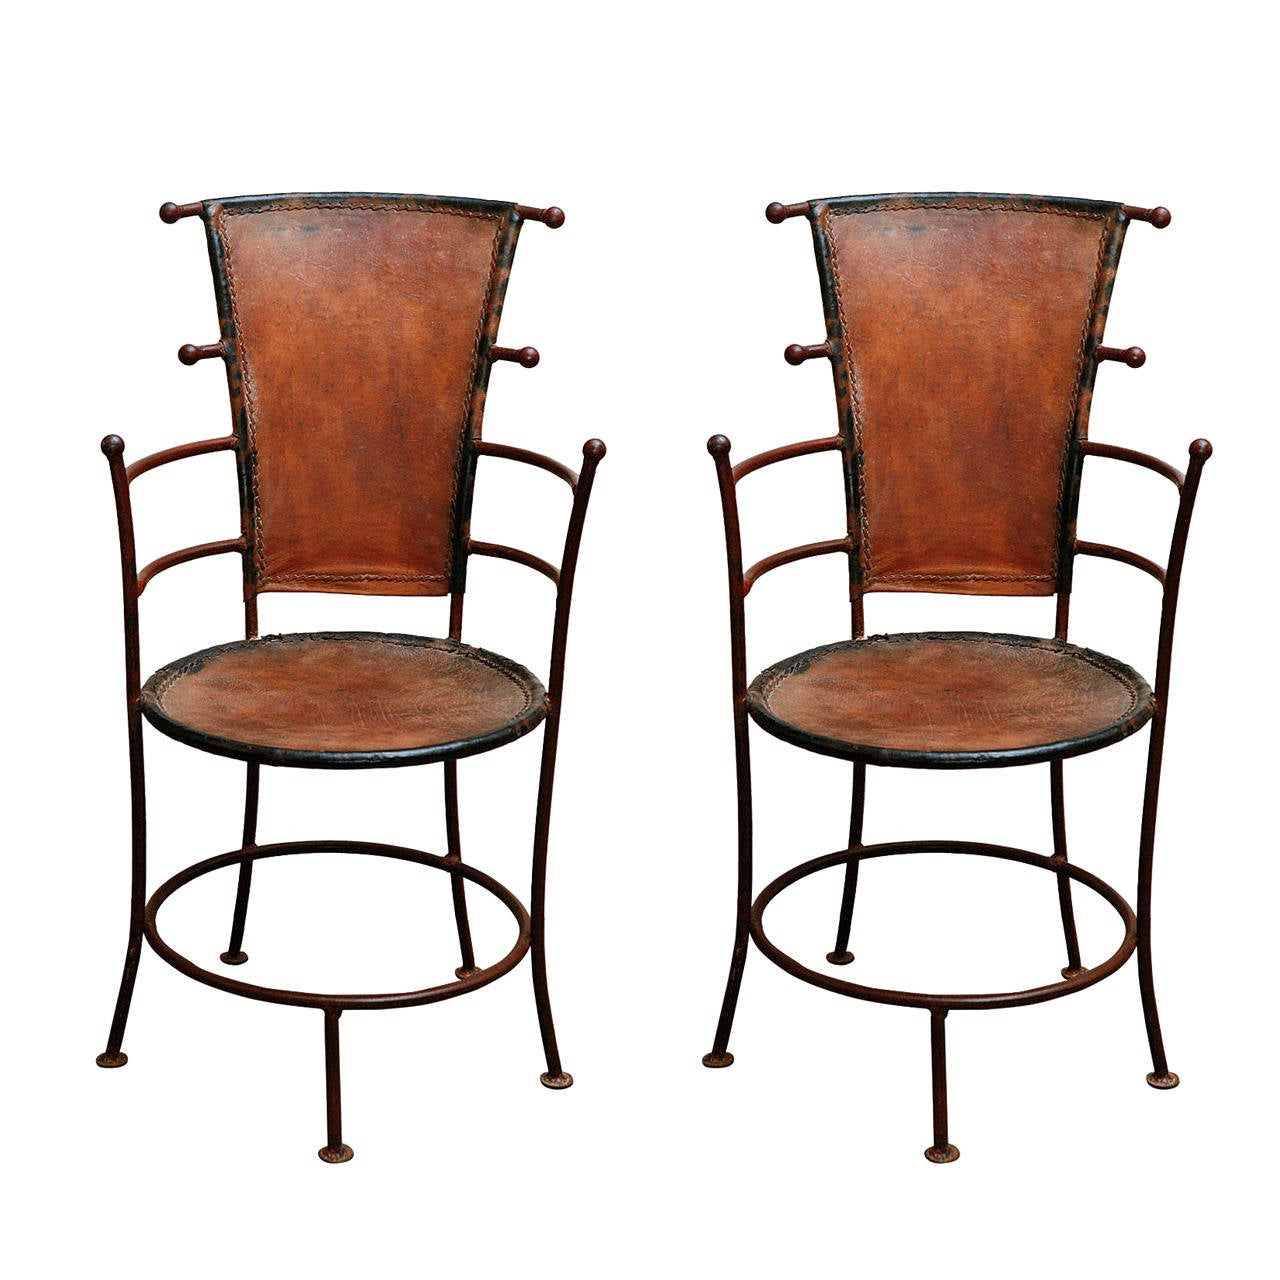 Pair of circa 1940 French Iron and Leather Chairs